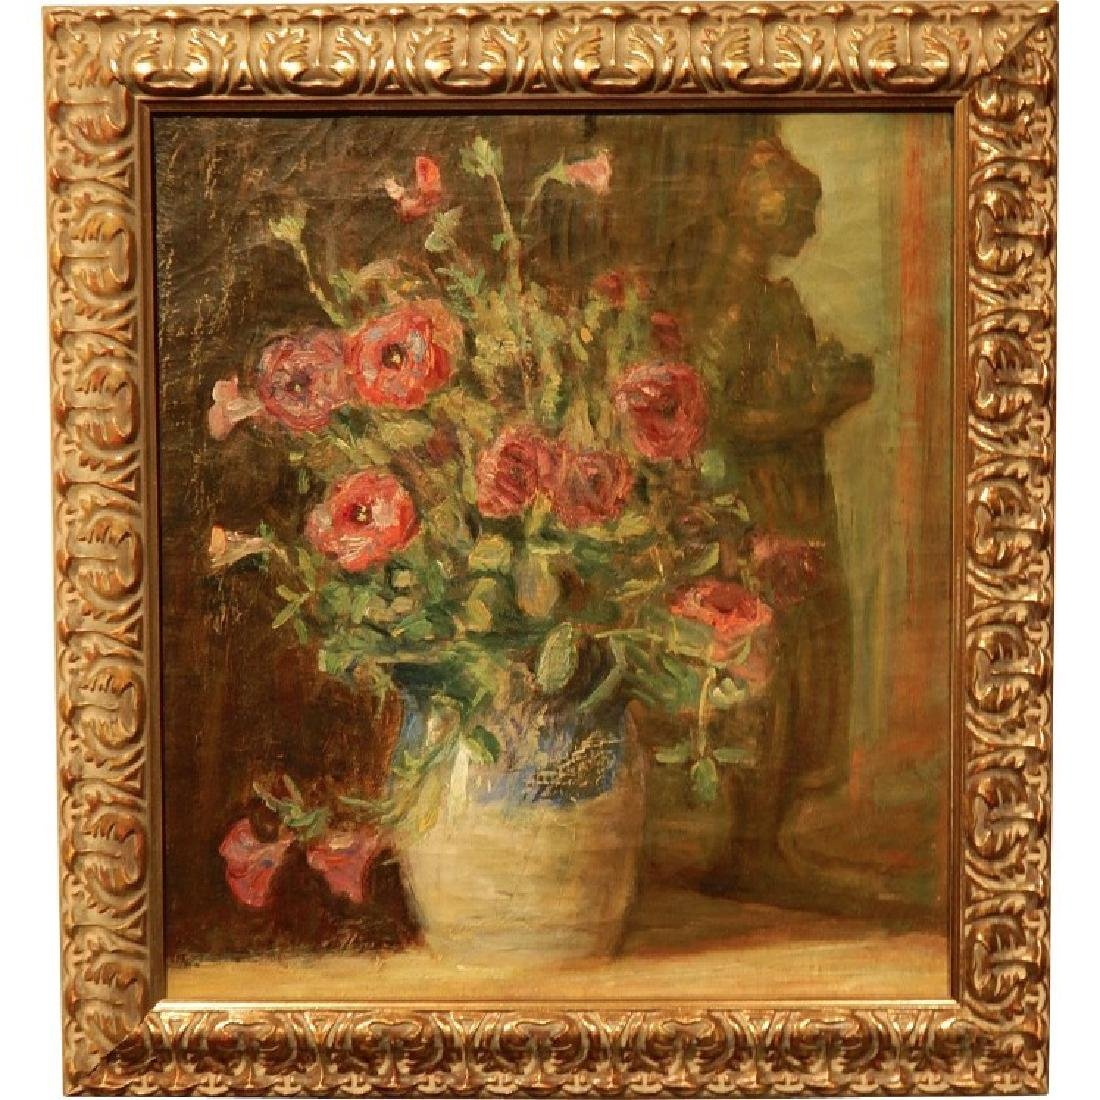 Antique Floral Still Life Oil Painting Signed Carlsund